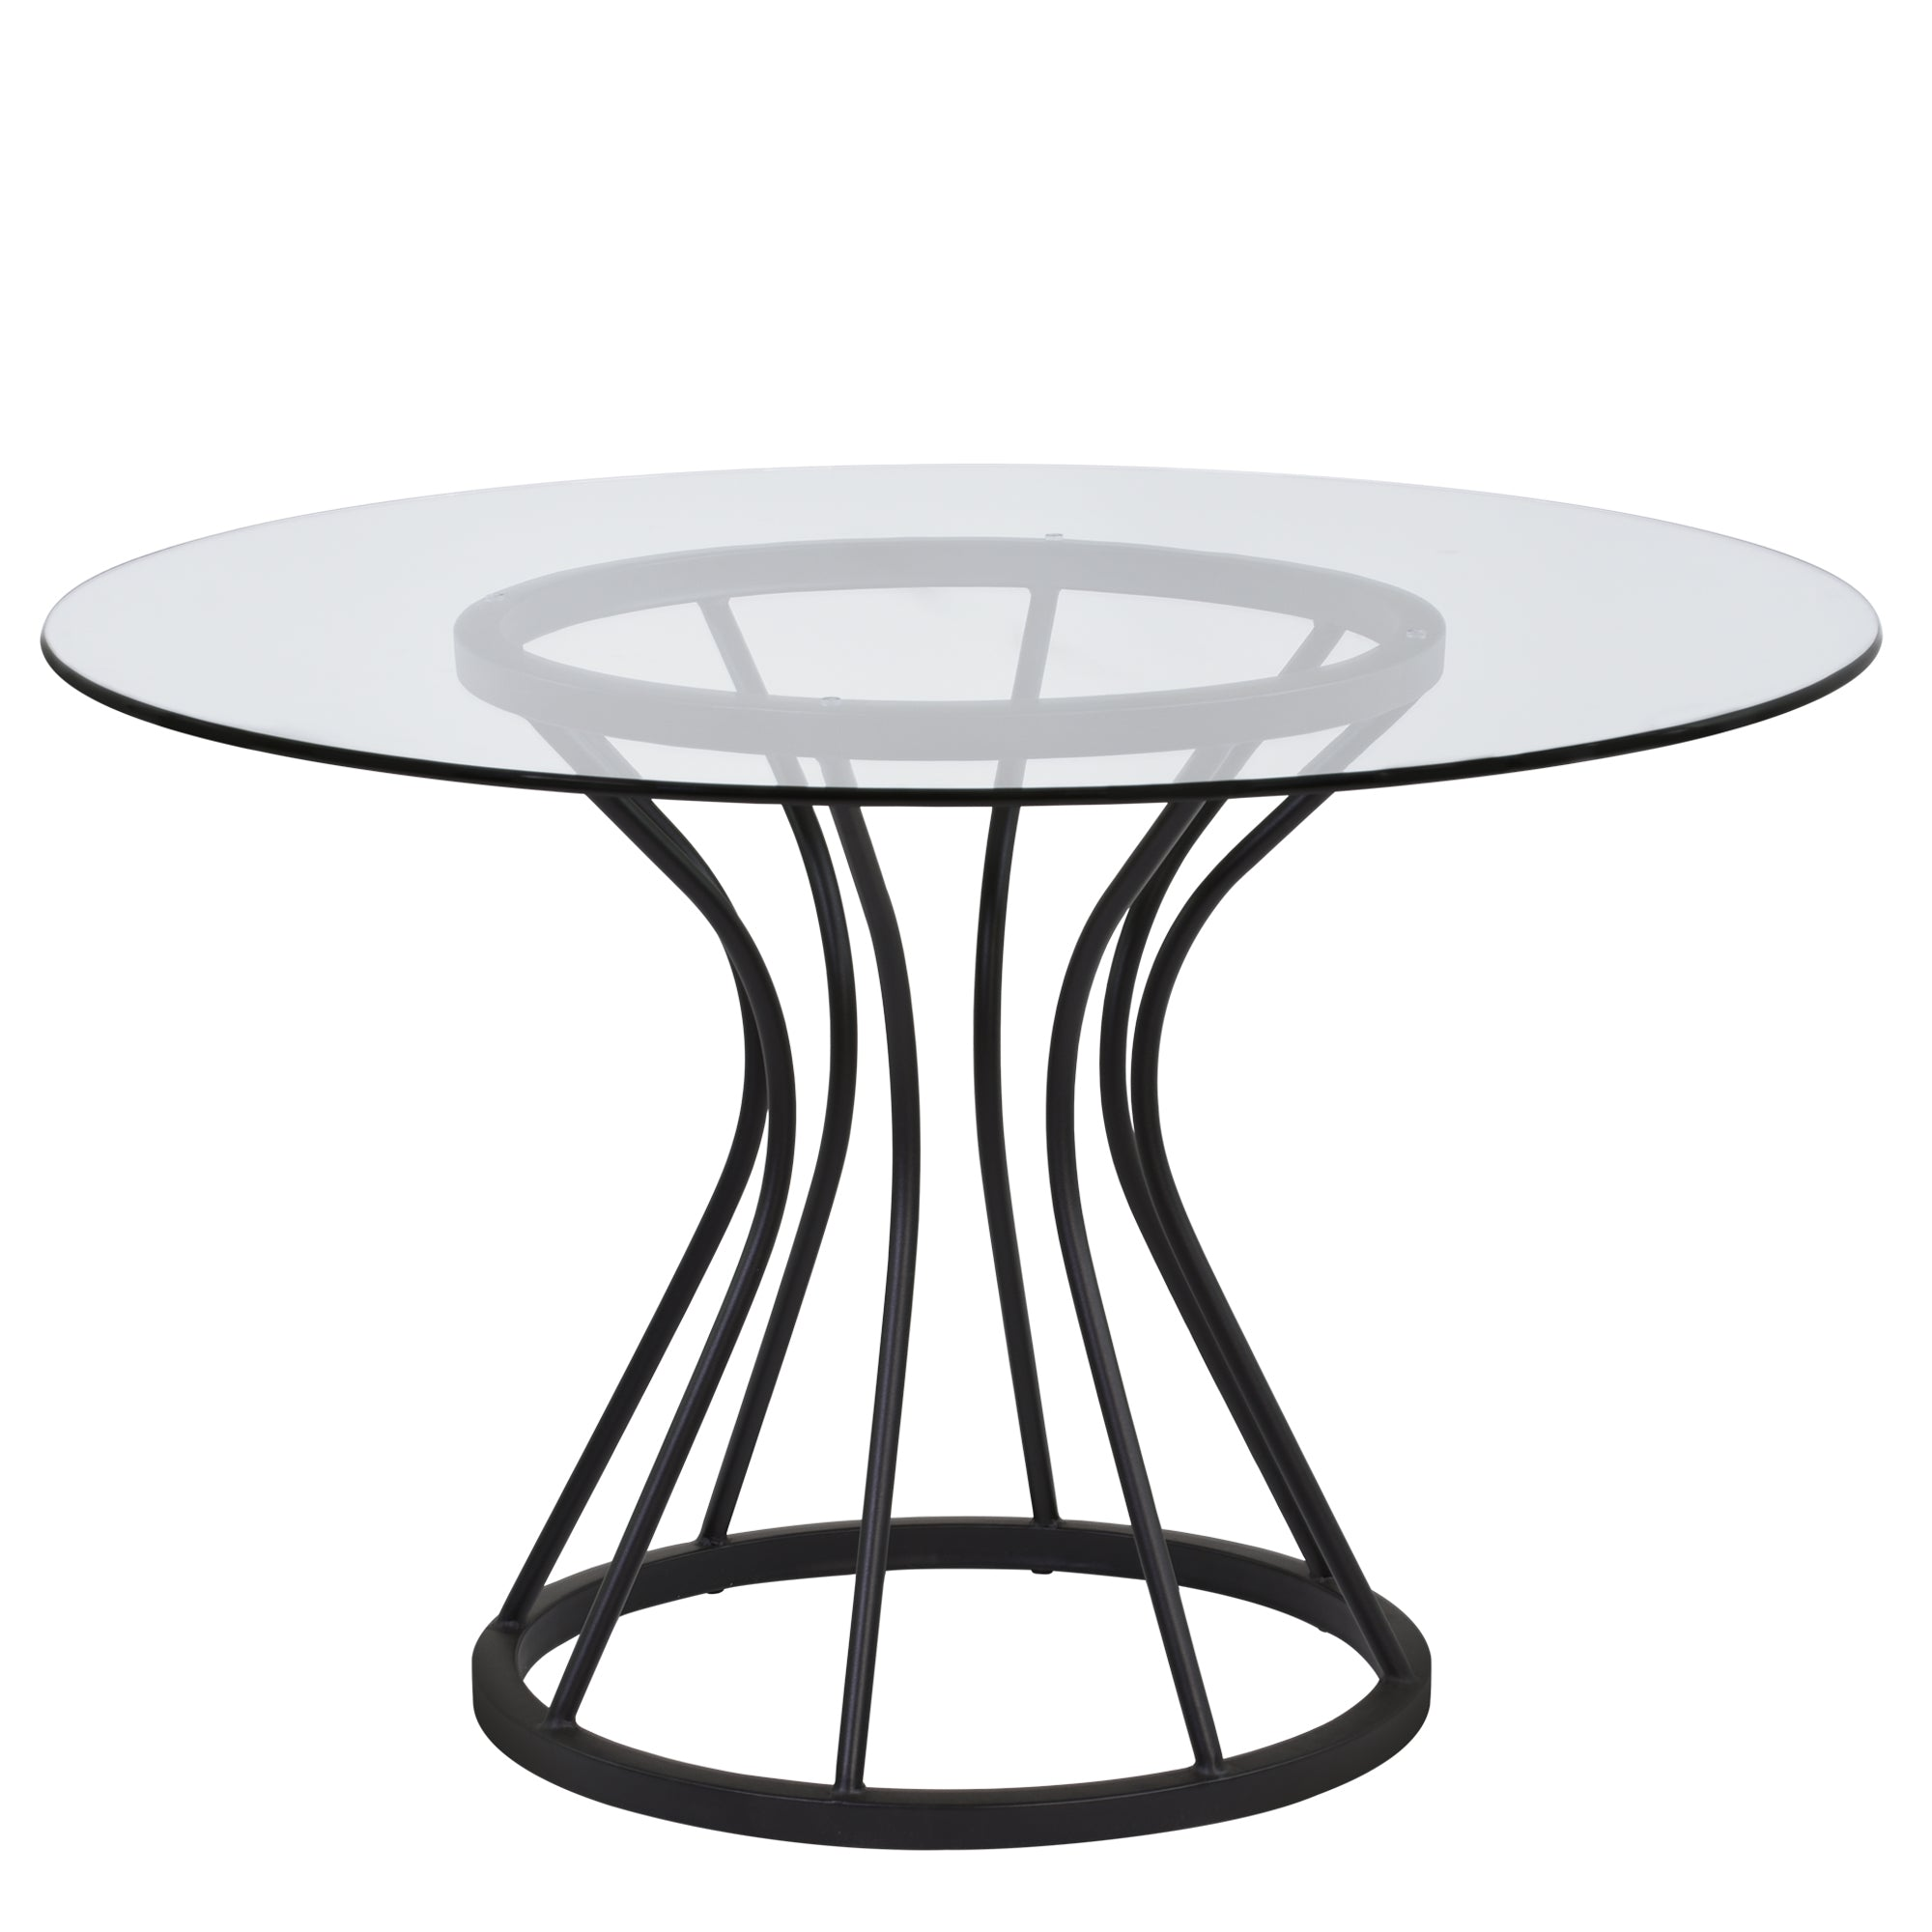 Armen Living LCZUDITOCLGL Zurich Round Dining Table in Black Finish and 48 Glass Top